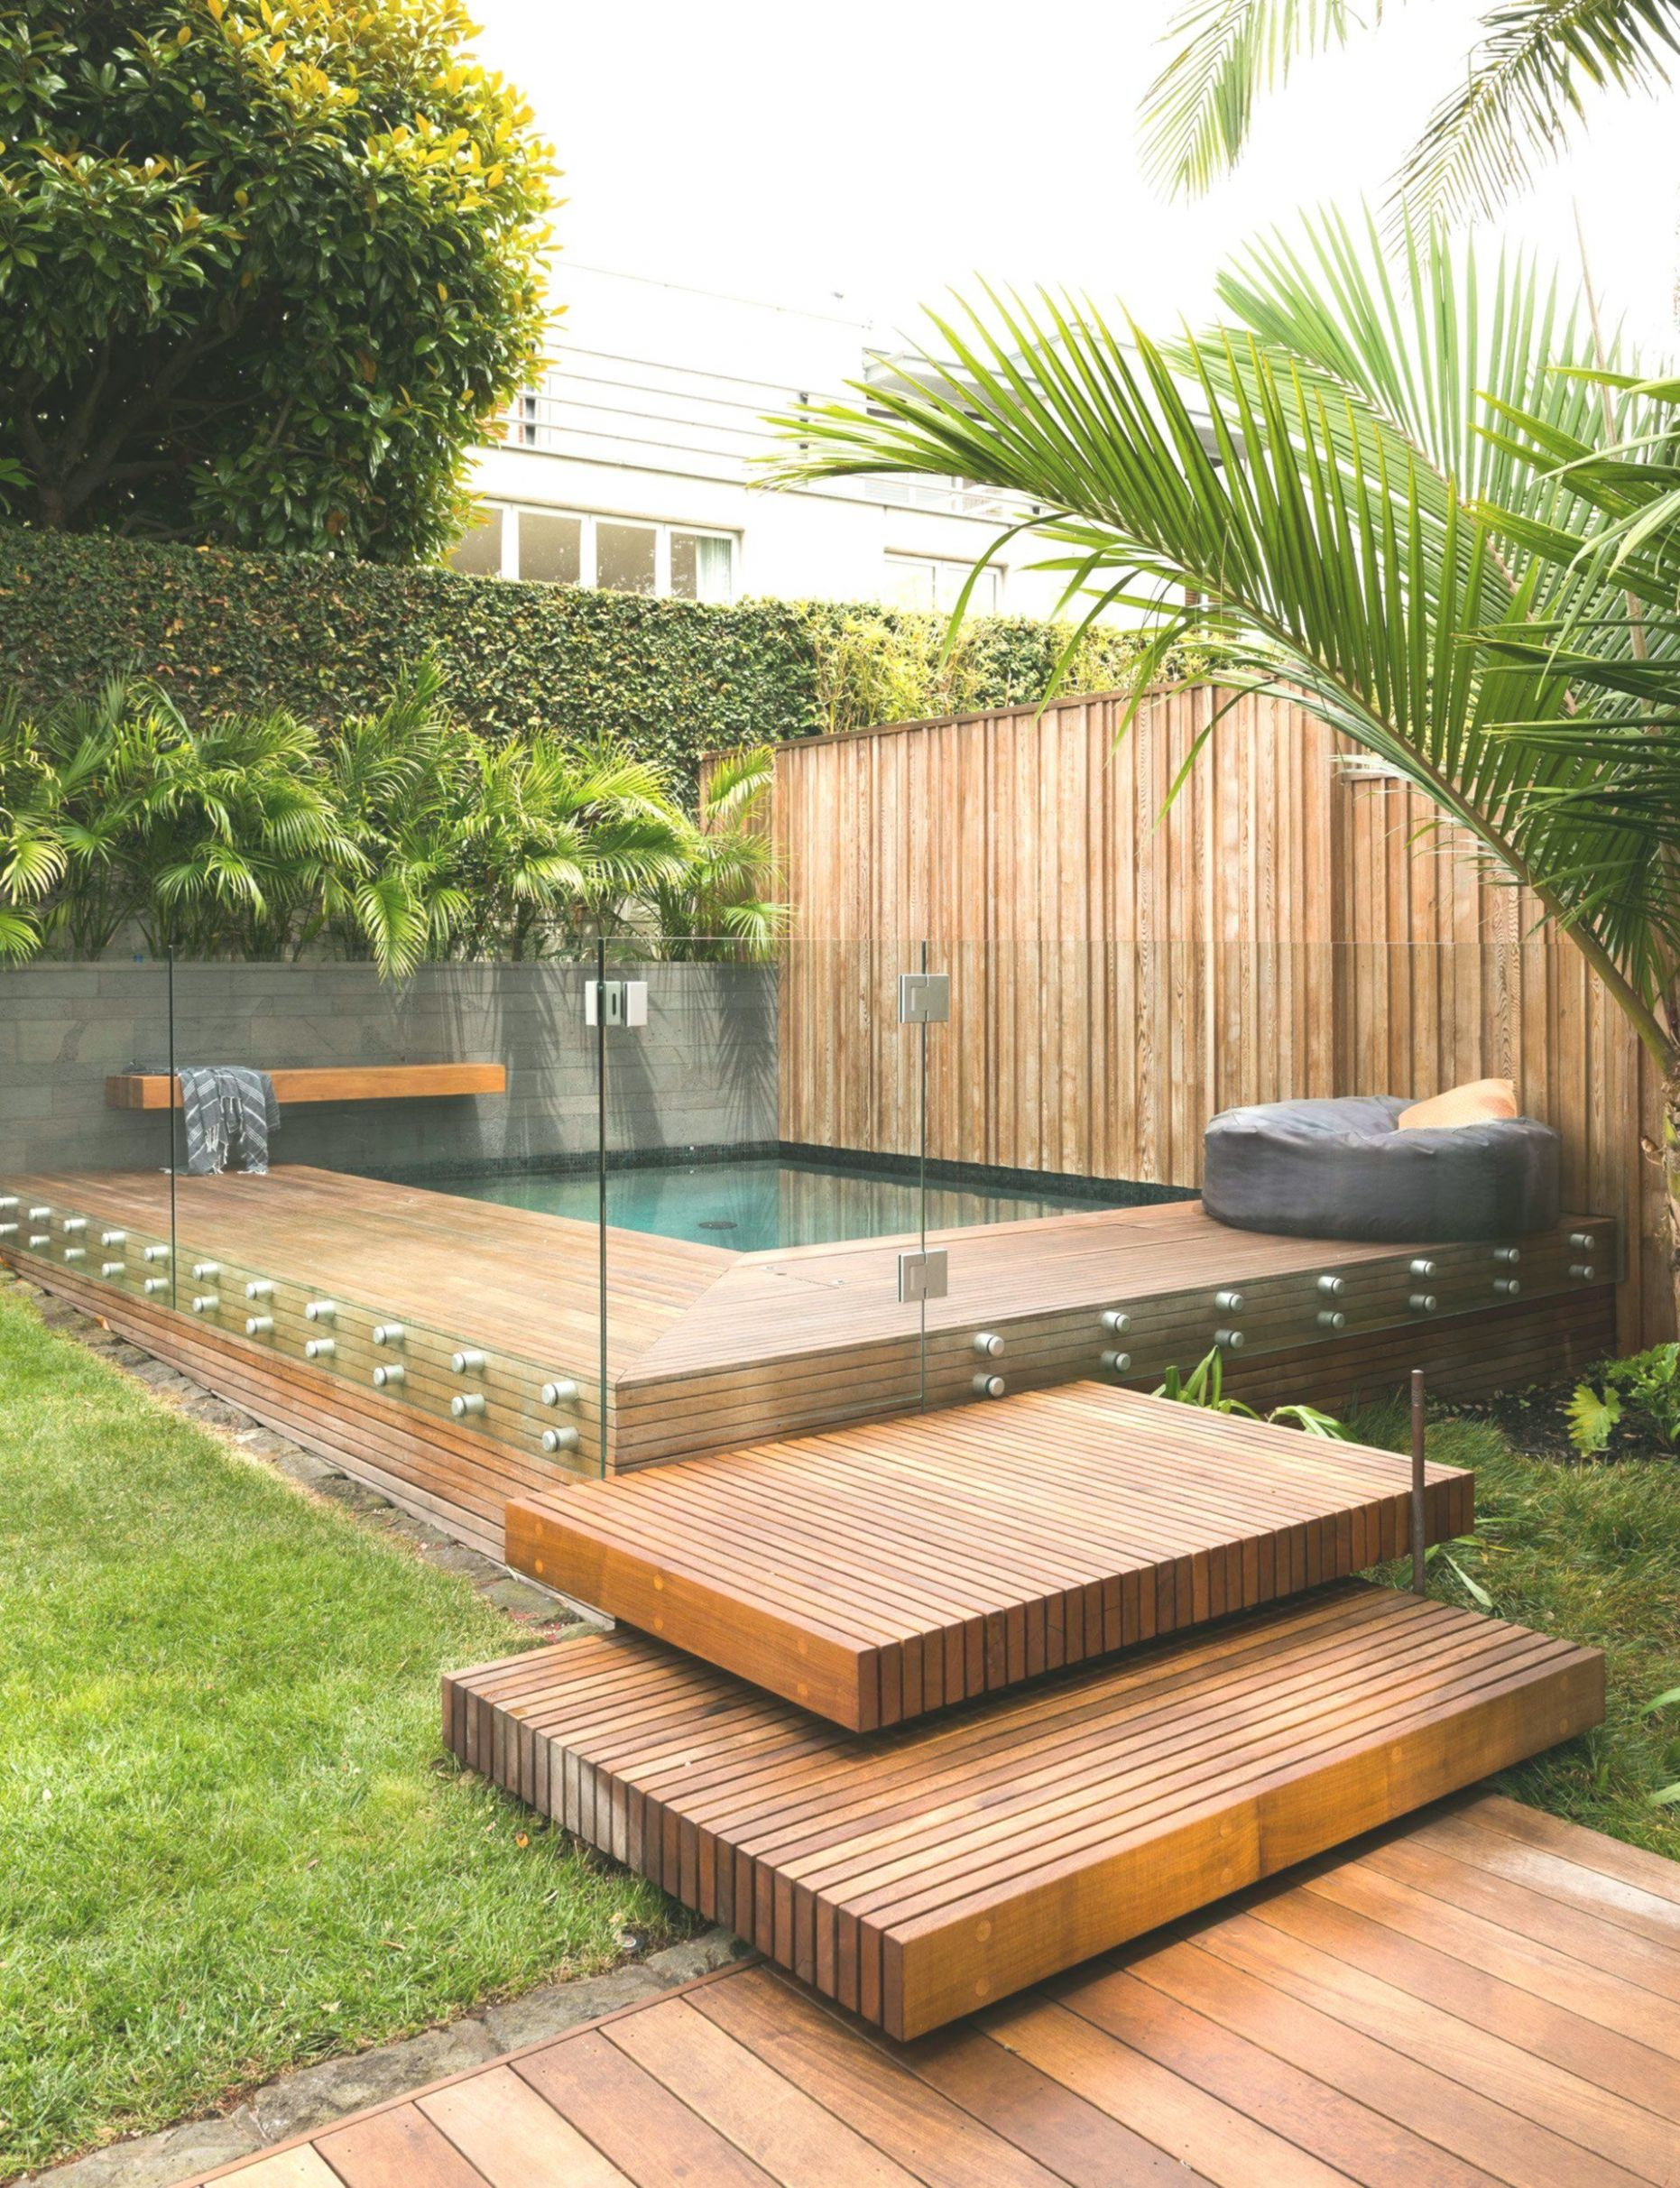 Be in to win an outdoor furniture package worth 12 gardening ..